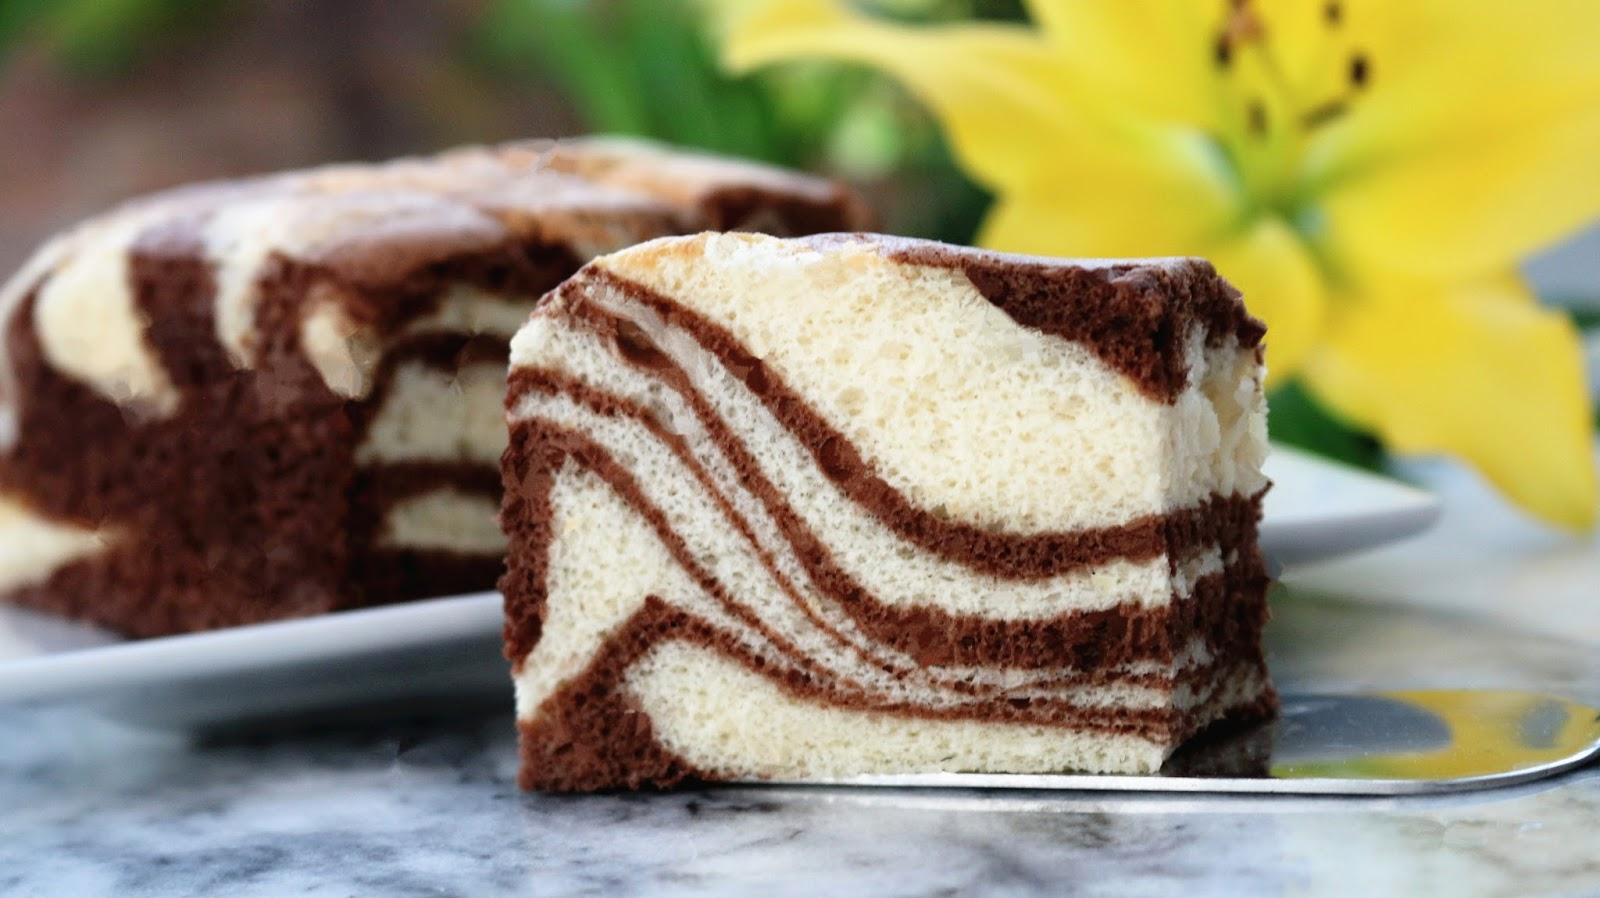 All Of Our Homemade Cakes Are Made From Heart Course The Best Ever You Can Serve This Chocolate Zebra Cake As Plain Simple Or To Add Something